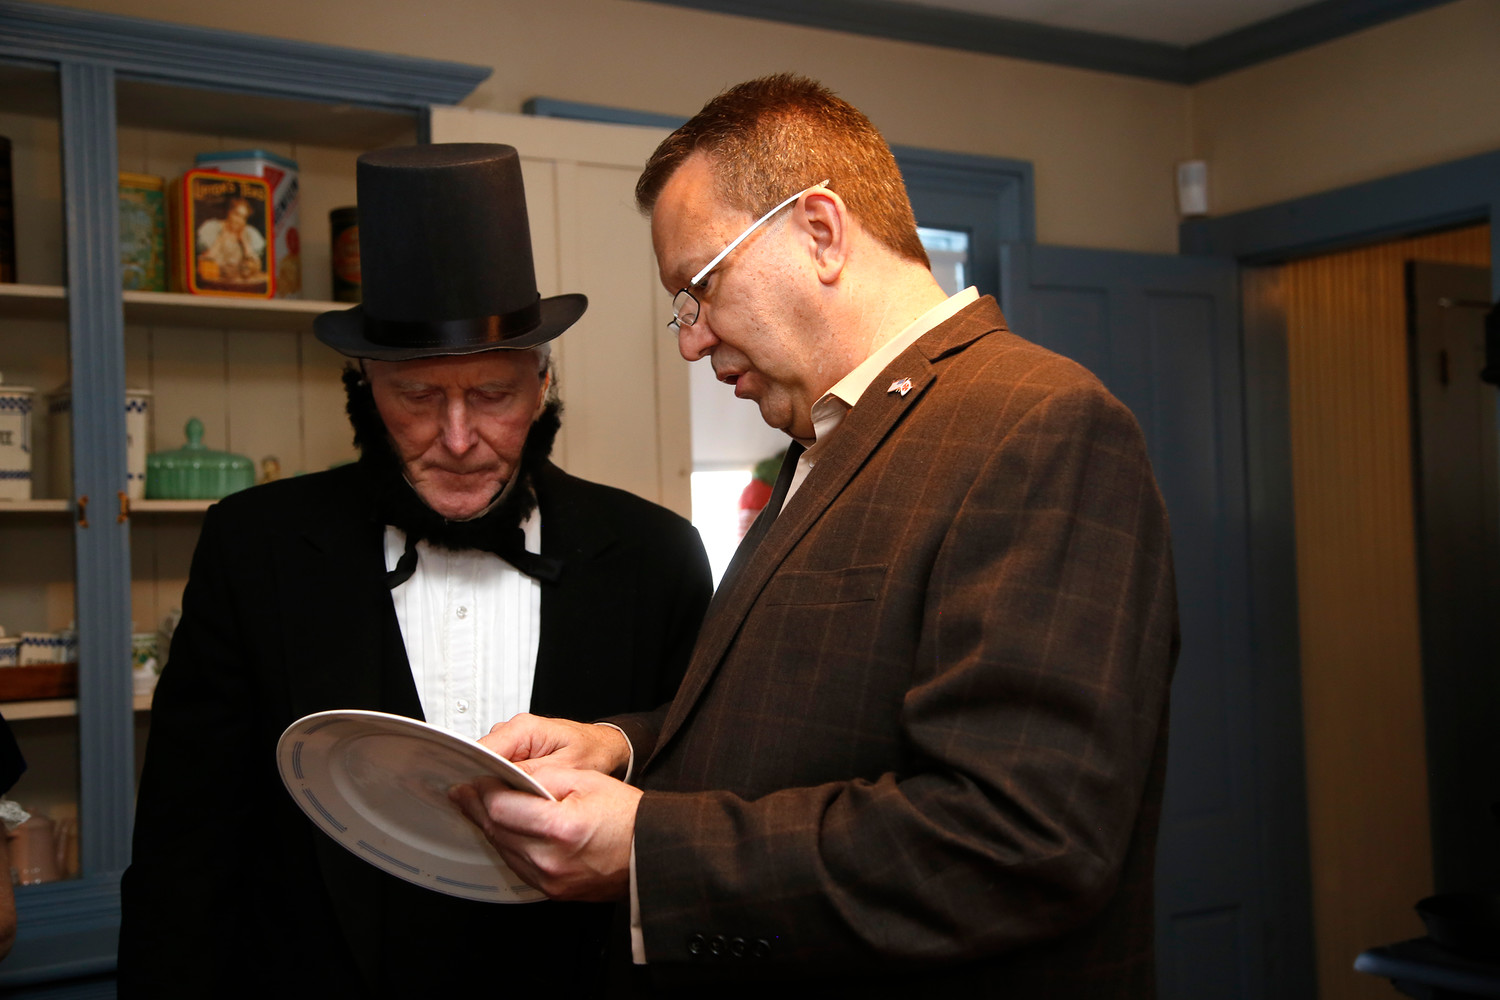 Mayor Ed Fare and Dave McKean examined a plate that was from George Washington's house in Mount Vernon.